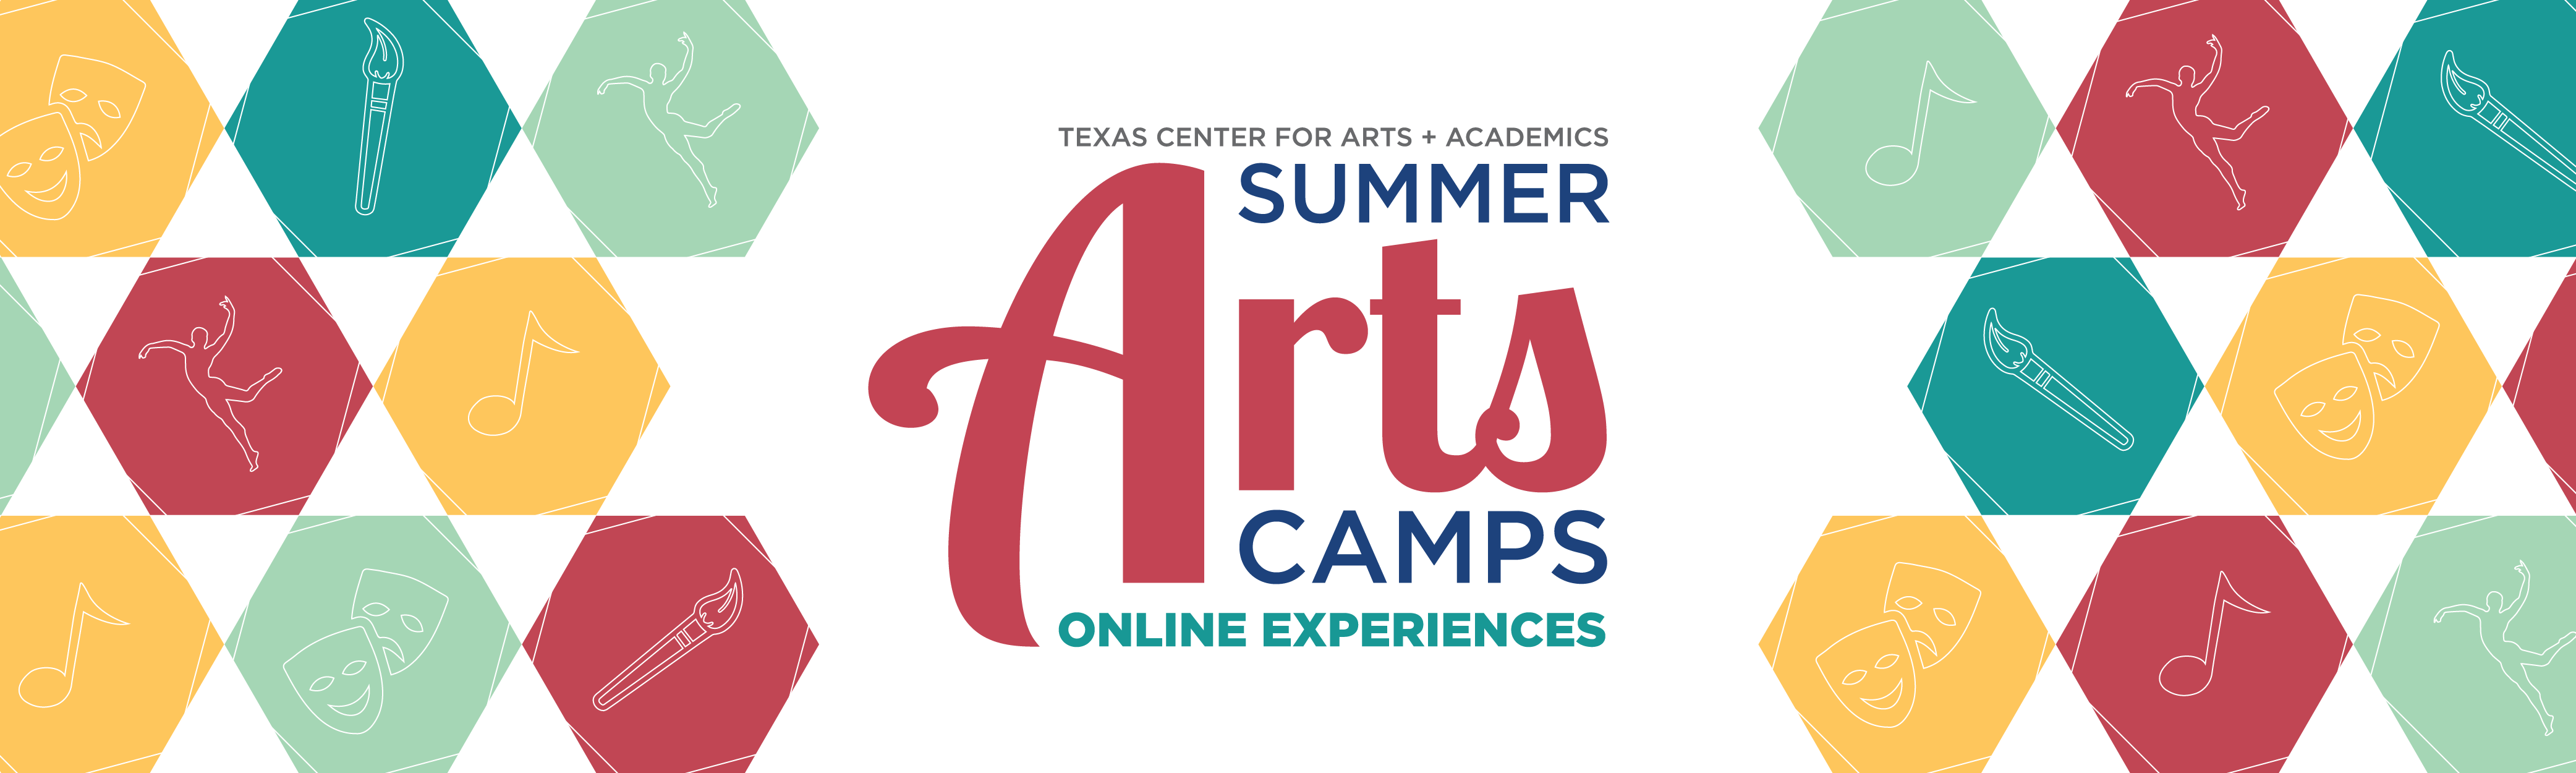 2020 Summer Arts Camps Online Experiences